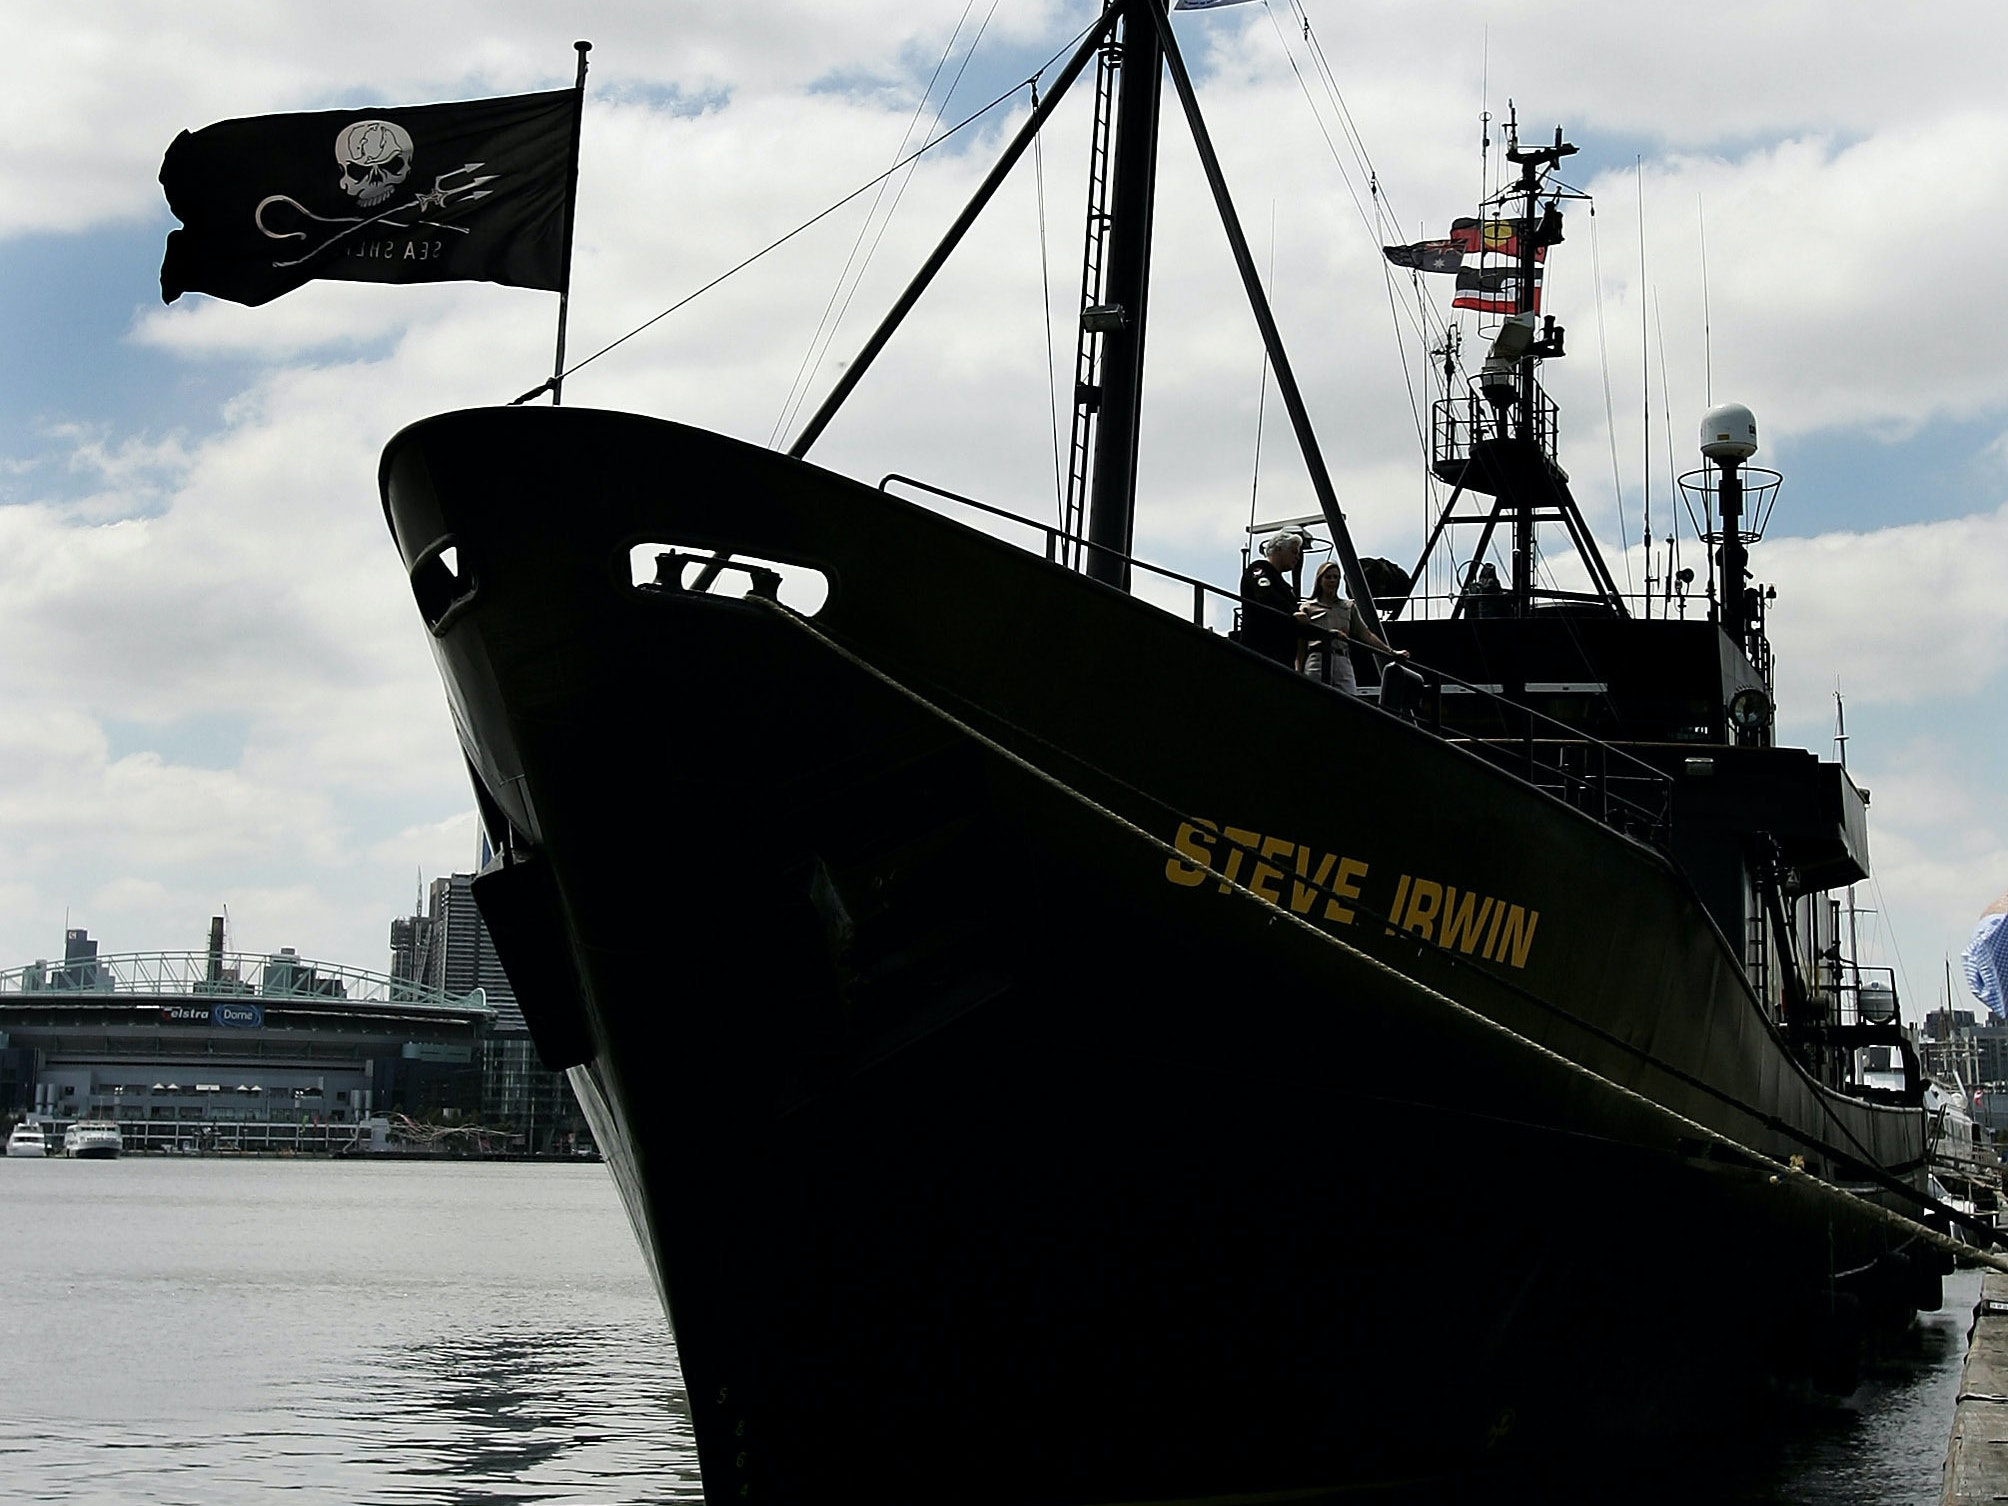 MELBOURNE, AUSTRALIA - DECEMBER 05:  Captain Paul Watson and Terri Irwin stand aboard as the Sea Shepherd Conservation Society renames its whale defending ship 'Steve Irwin' at Victoria Docks on December 5, 2007 in Melbourne, Australia. The ship leaves Melbourne for  Antarctic waters today to intervene against illegal whaling action by Japanese whaling fleets.  (Photo by Quinn Rooney/Getty Images)